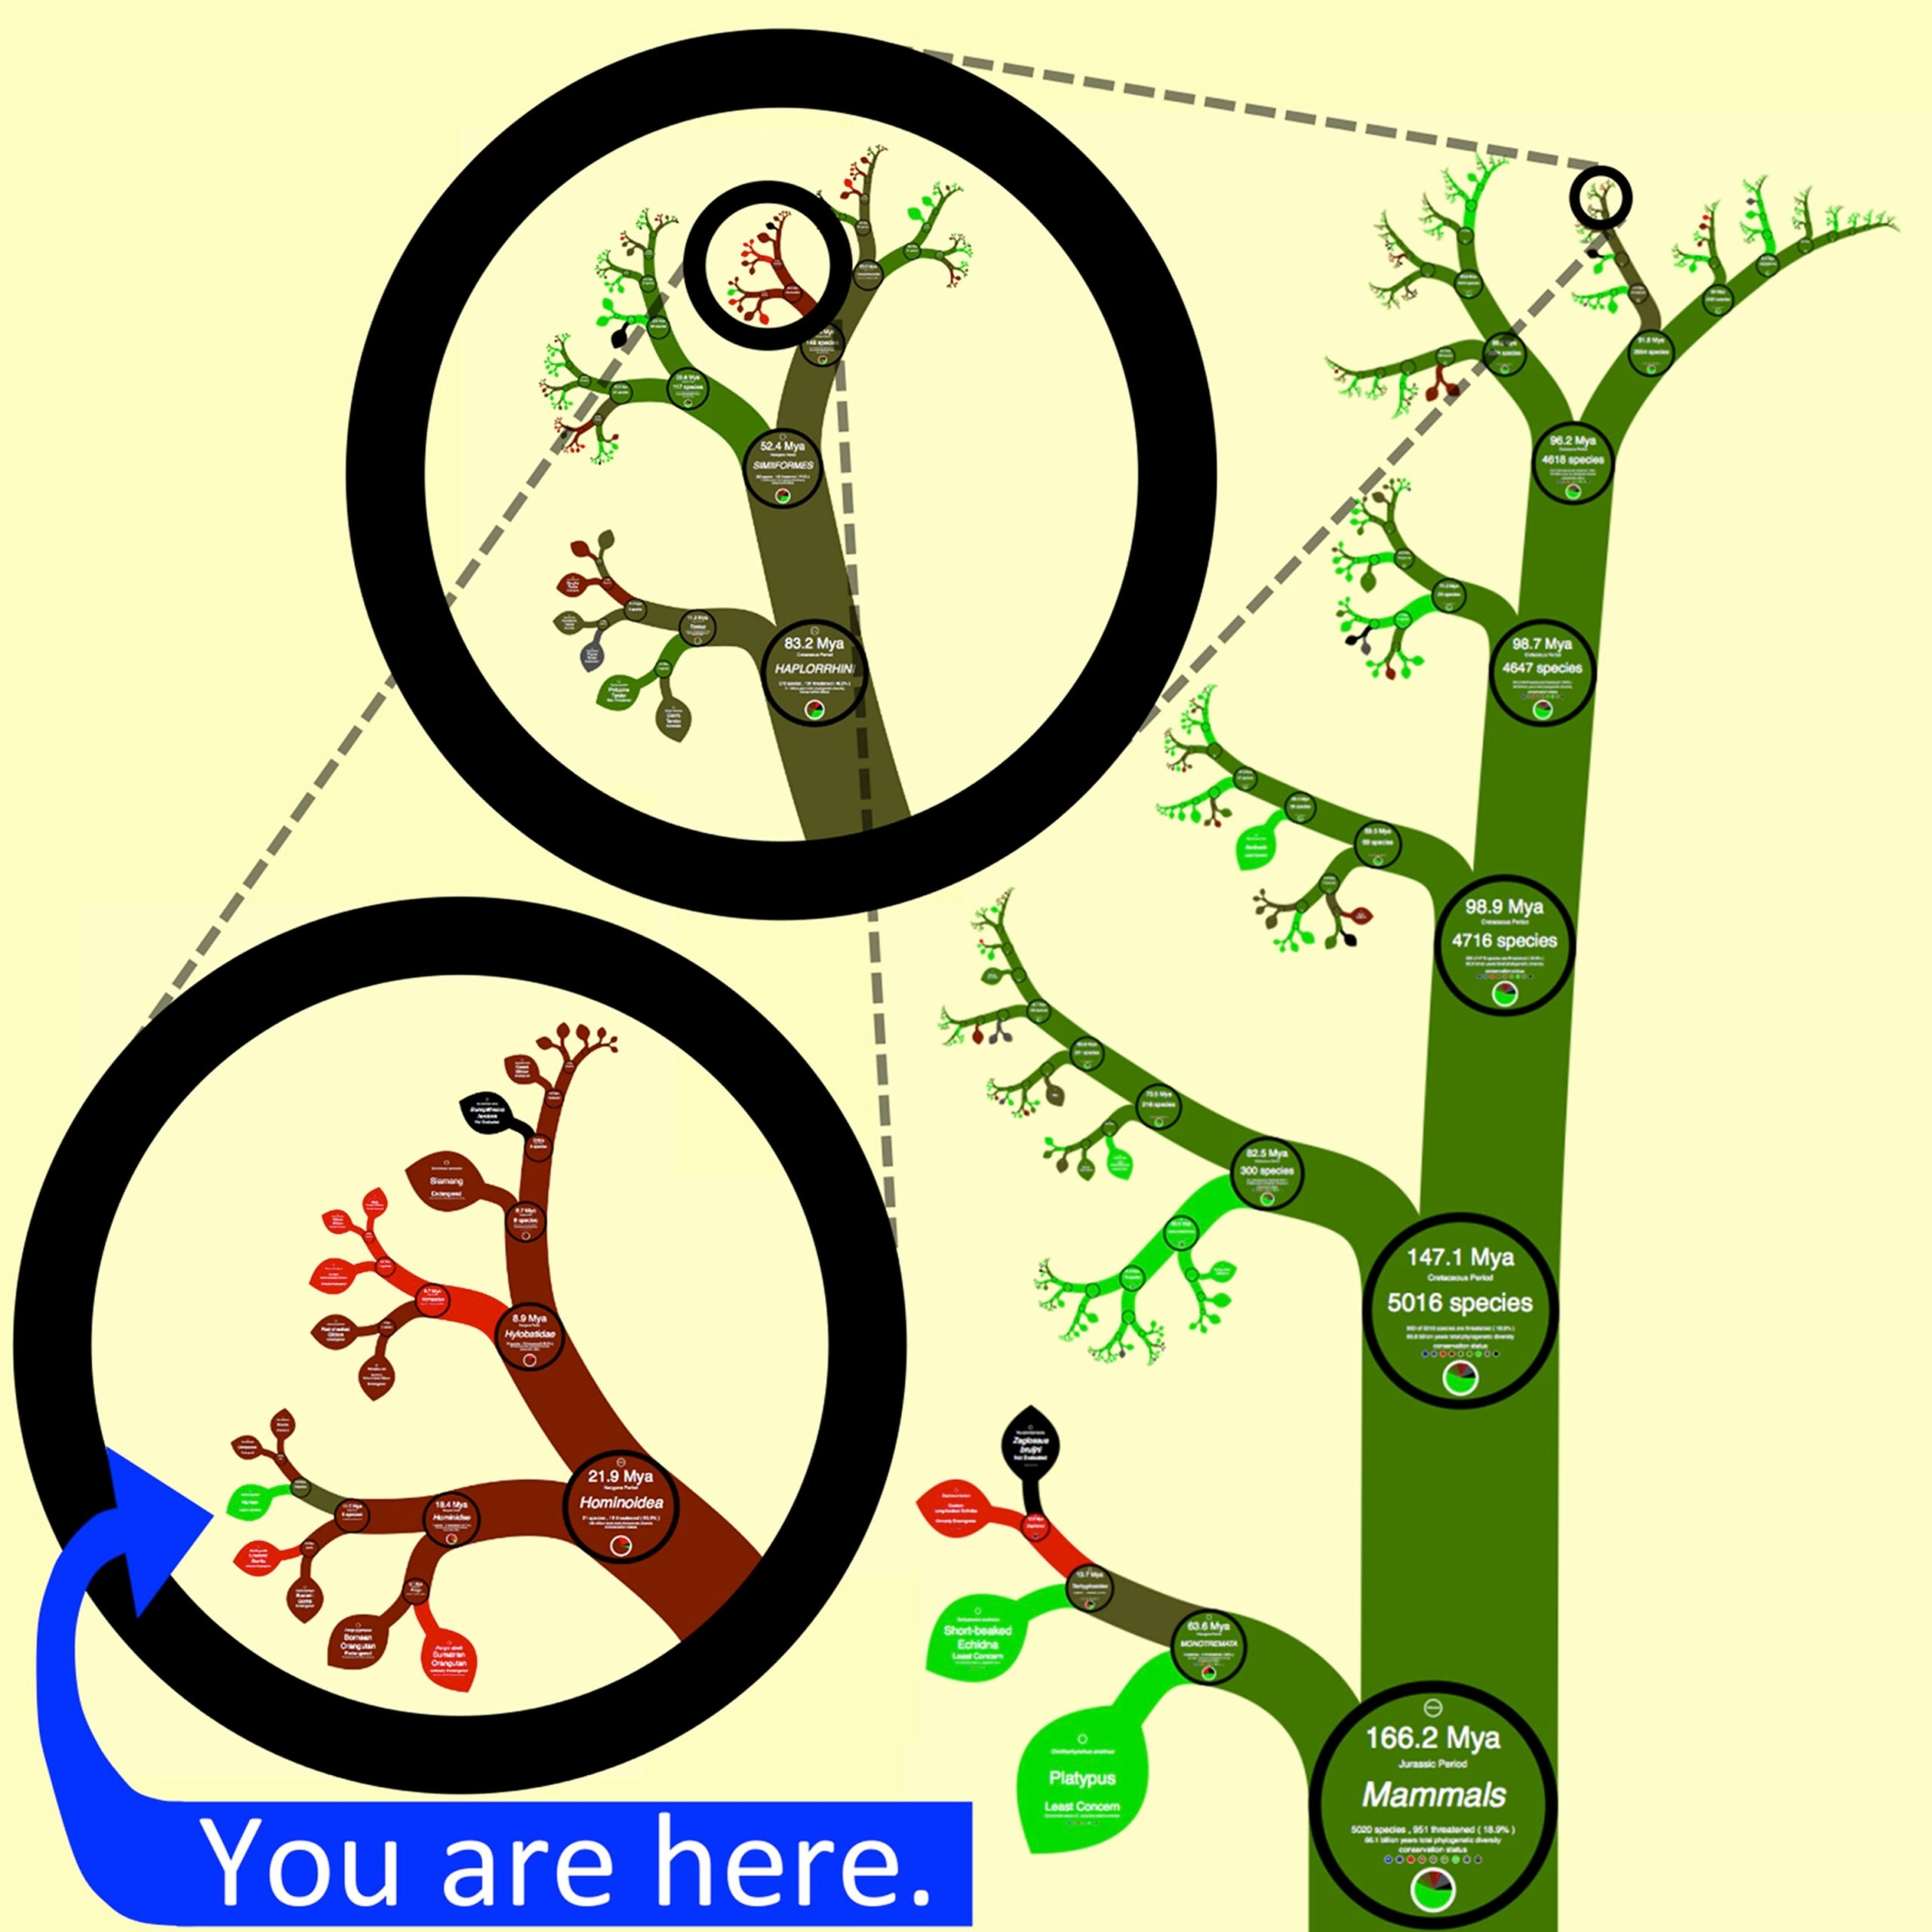 Interactive Fractal Tree of Life Zooms In On Earth's Entire Evolutionary History